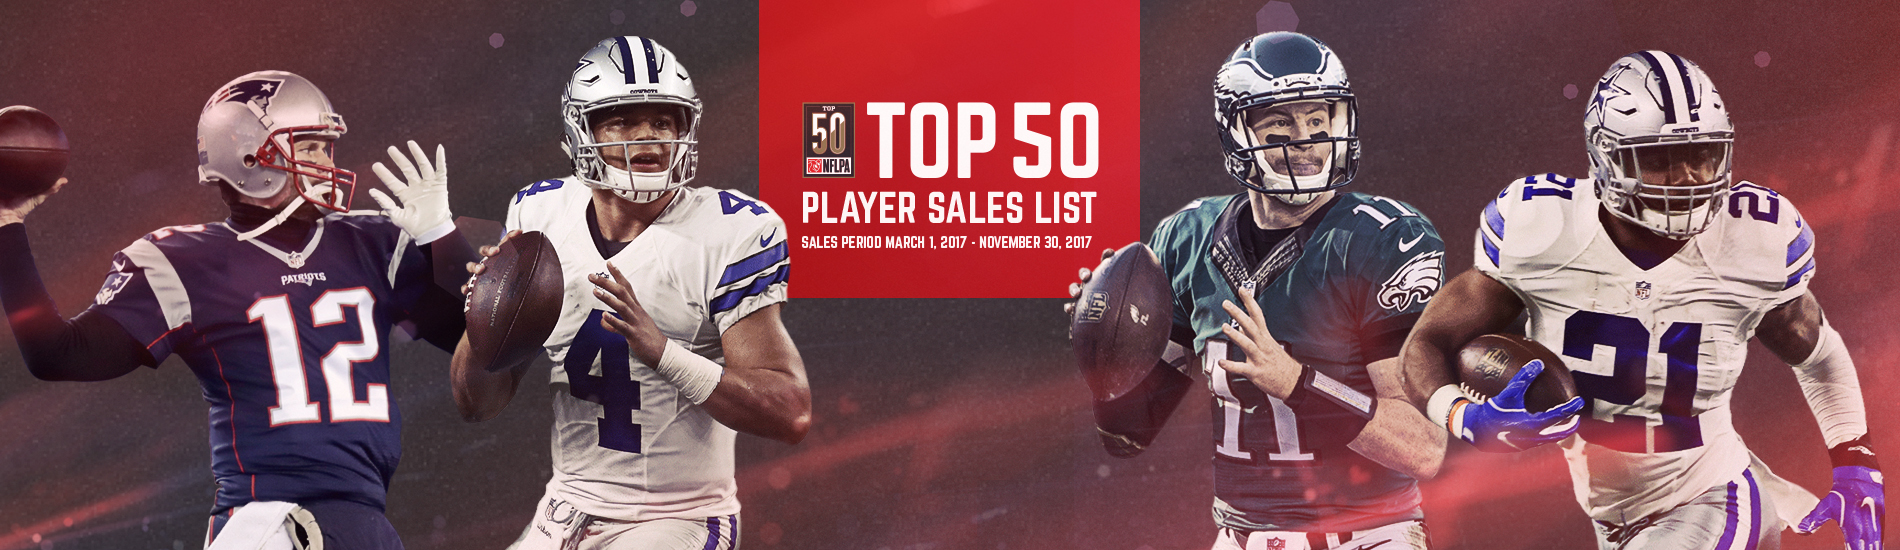 26a1812f1 NFL Players Inc. - Dak Prescott Remains No. 1 on NFLPA Top 50 Player Sales  List